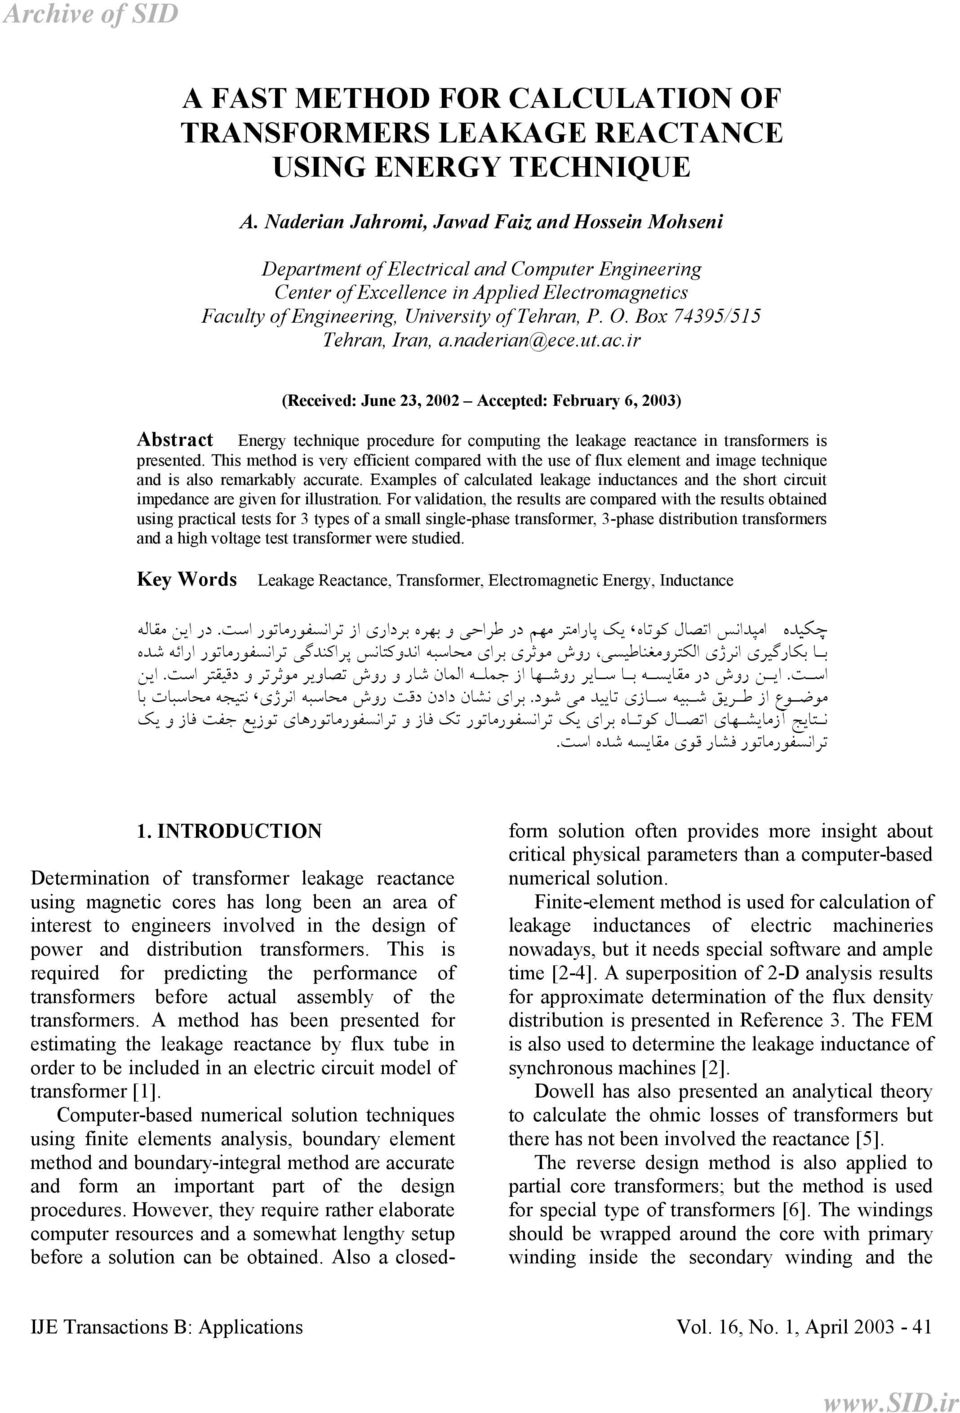 B 7495/55 Tehran, ran, a.naerian@ece.ut.ac.ir Abstract (Receive: June, 00 Accepte: February 6, 00) Energy technique prceure fr cmputing the leakage reactance in transfrmers is presente.